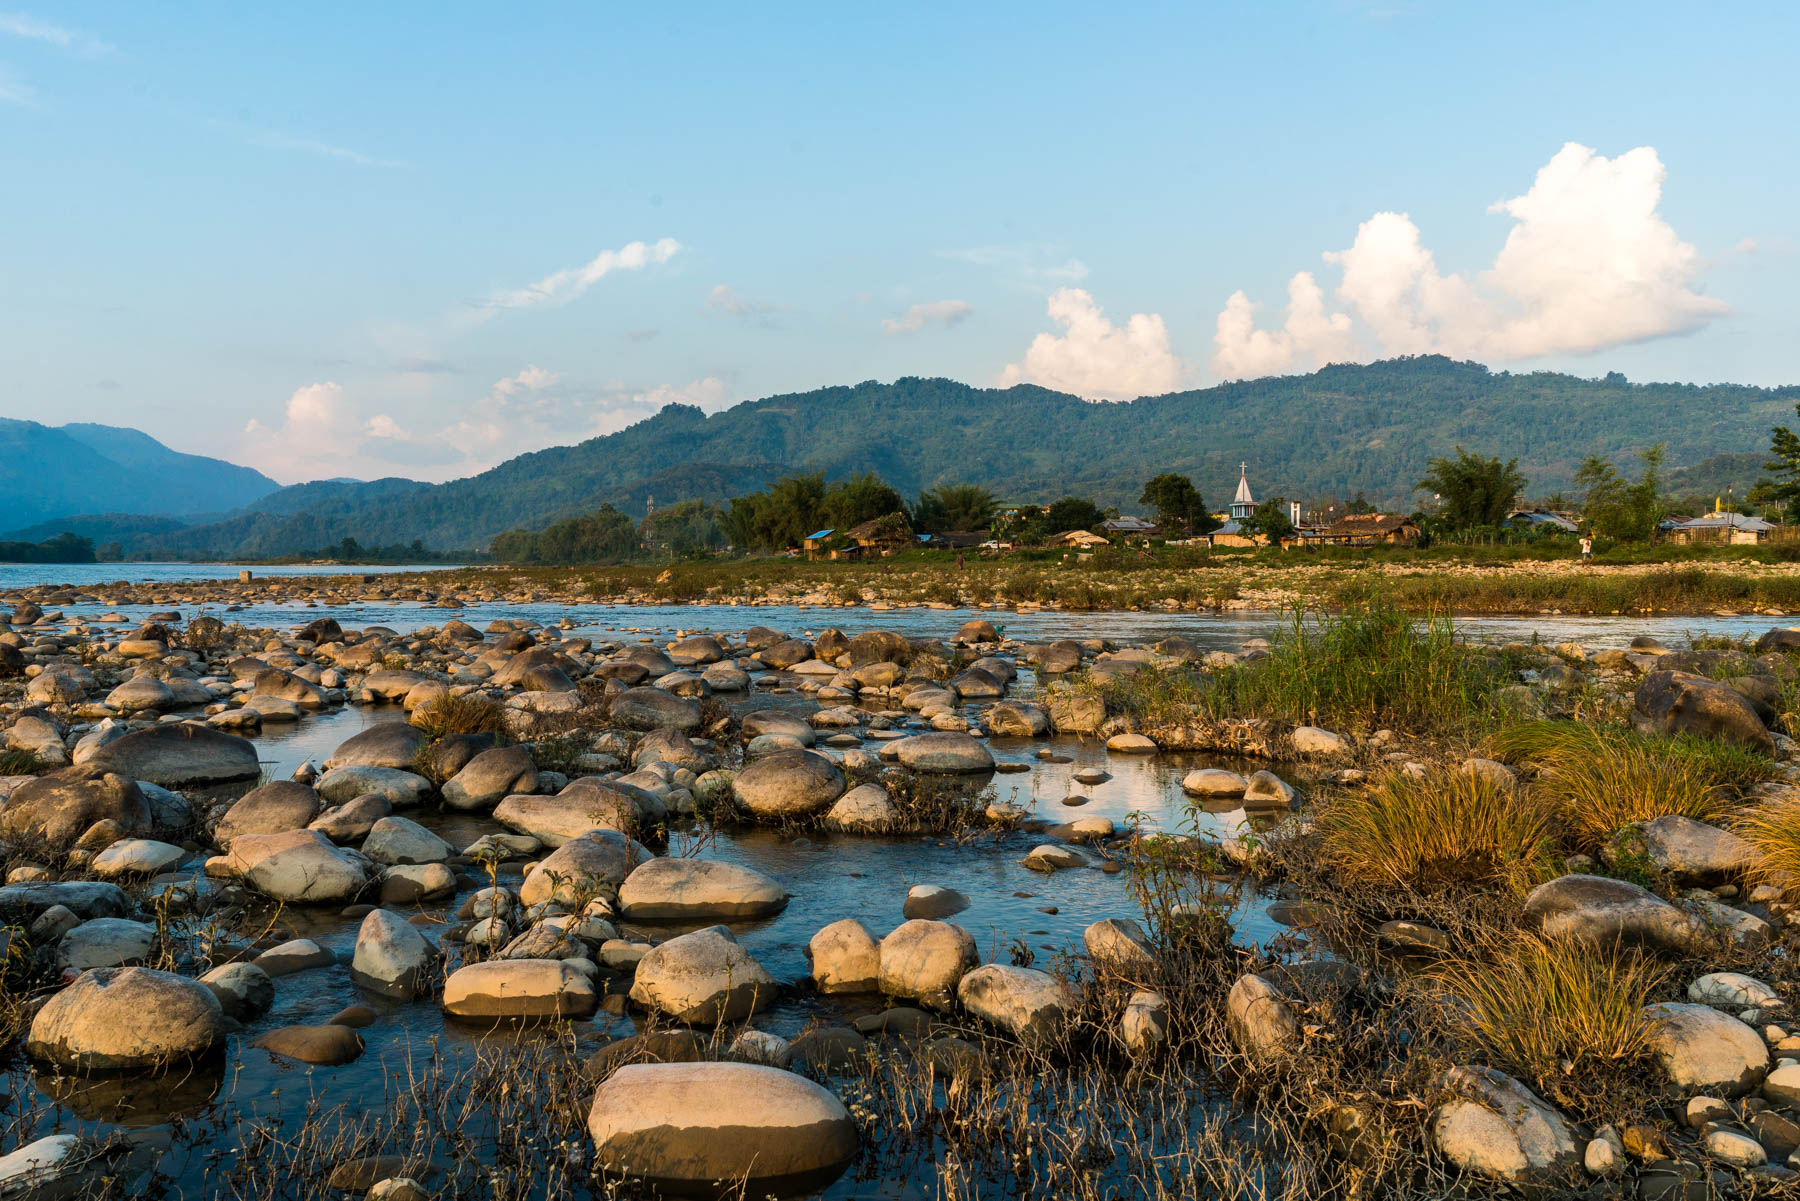 Backpacker guide to Arunachal Pradesh, India - The Siyom riverside near Along town - Lost With Purpose